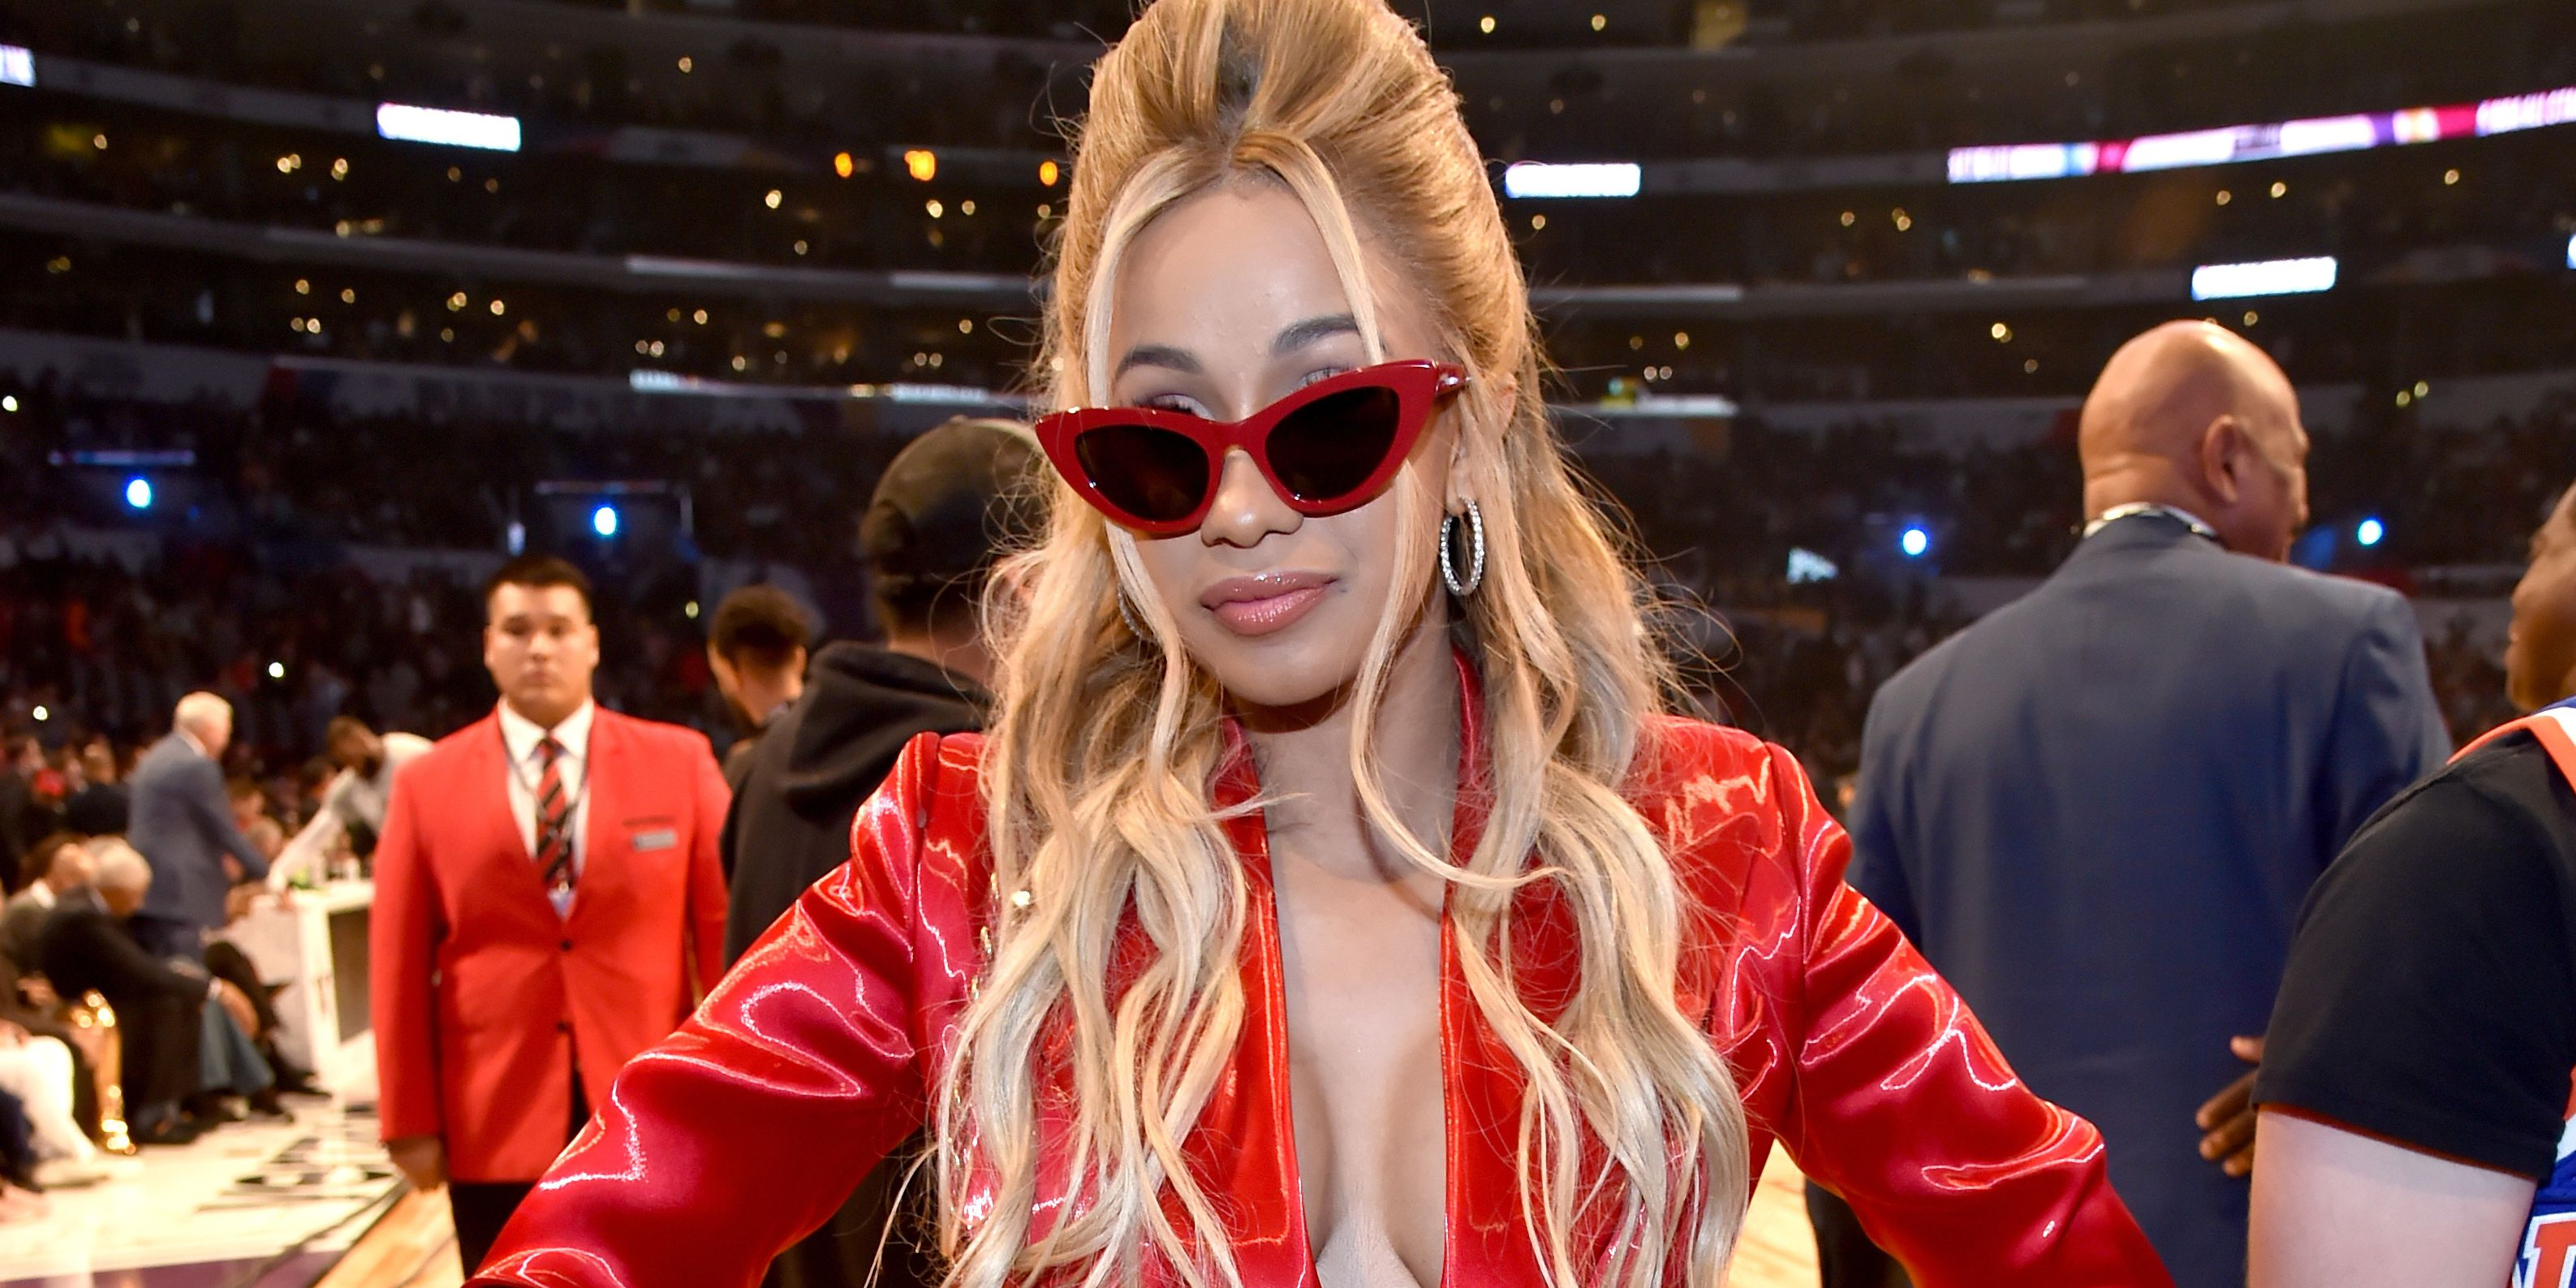 Cardi B To Collaborate With Fashion Nova For Fall 2018 Clothing Line